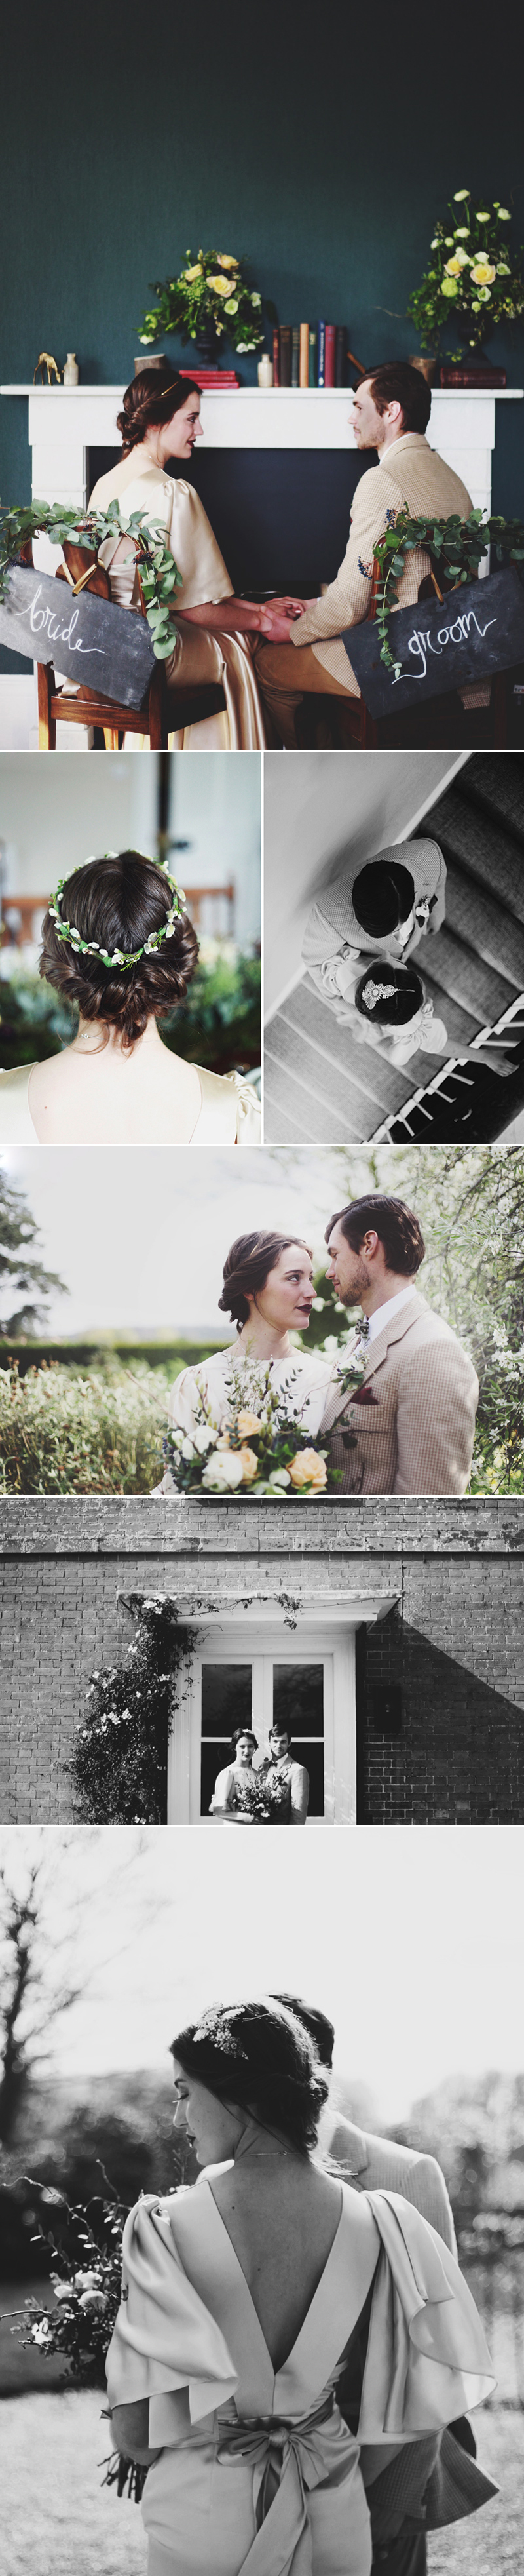 modern-vintage-wedding-inspiration-norfolk-wedding-venue-godwick-hall-the-little-lending-co-coco-wedding-venues-001